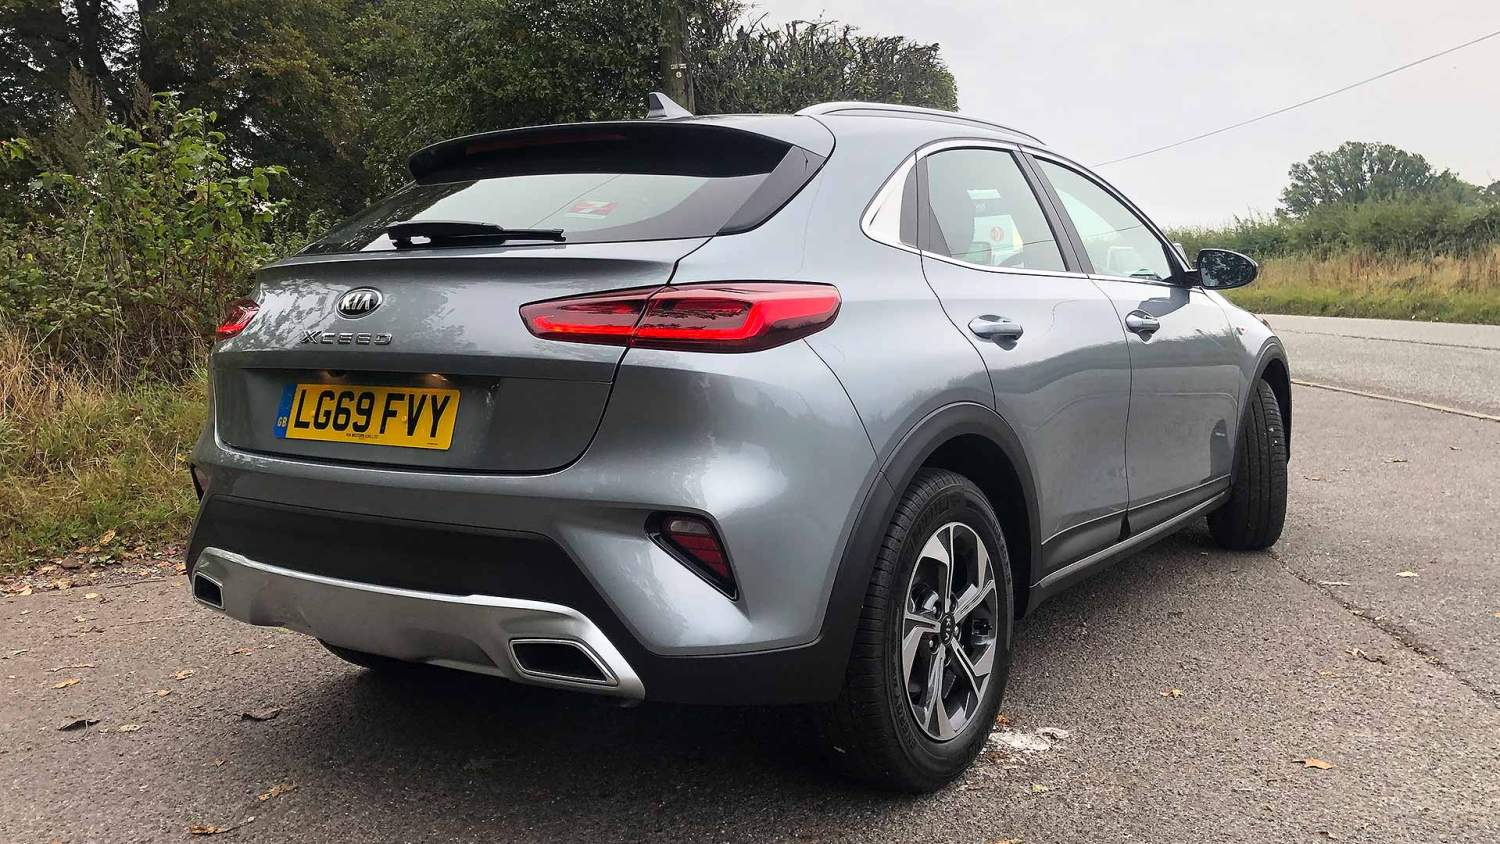 New Kia XCeed